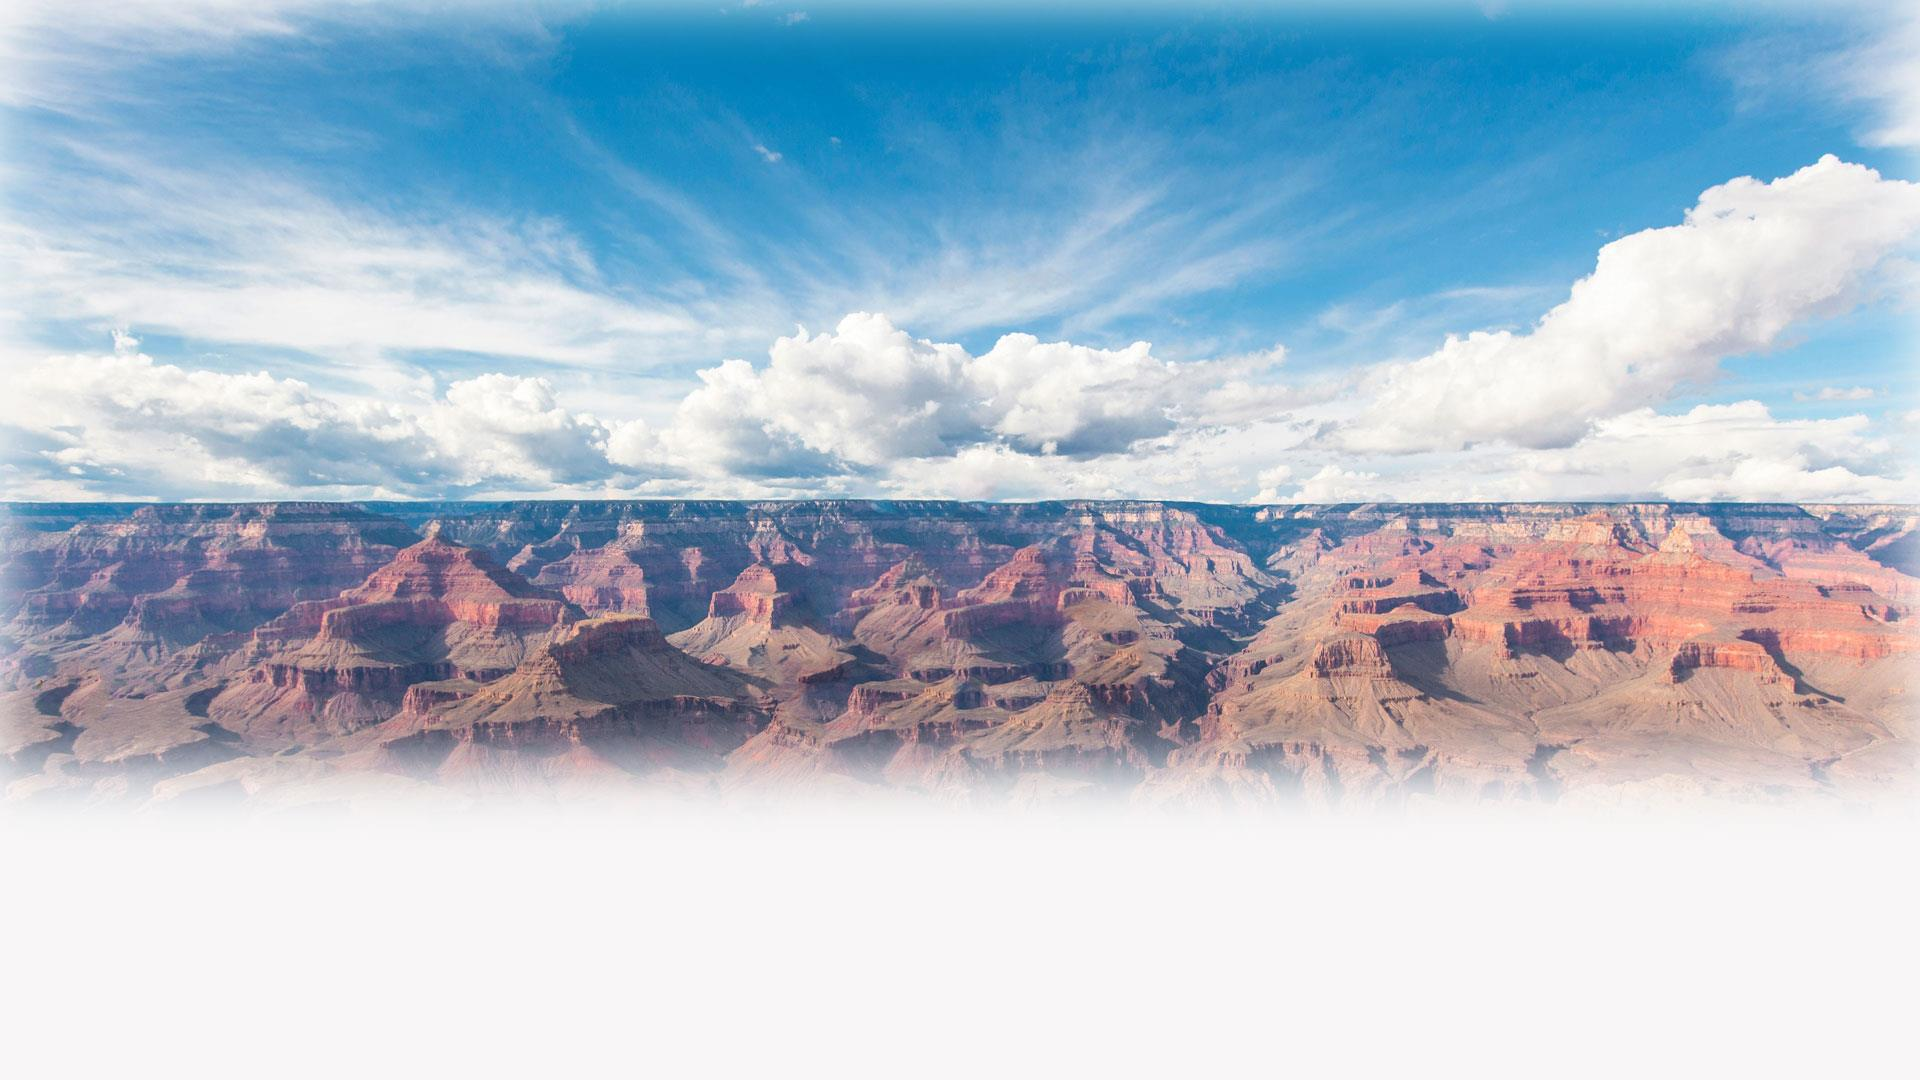 Panoramic view of red valley and skyline with clouds